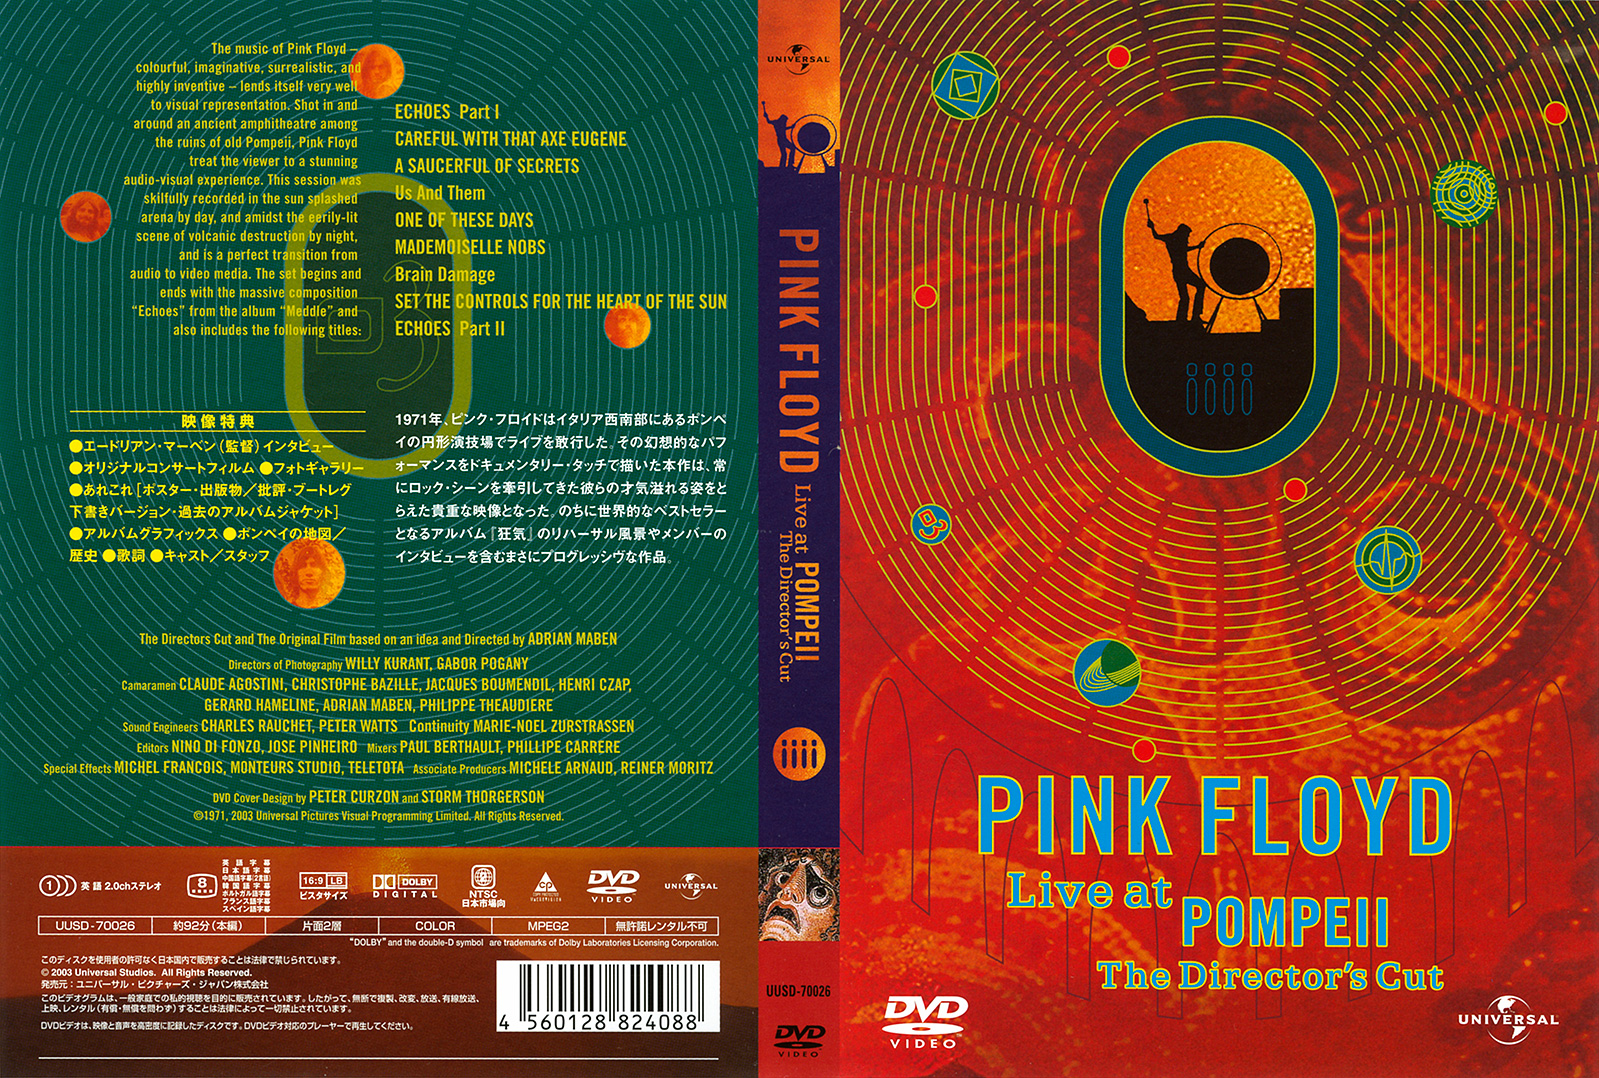 Pink Floyd Archives-Japanese Pink Floyd DVD Discography